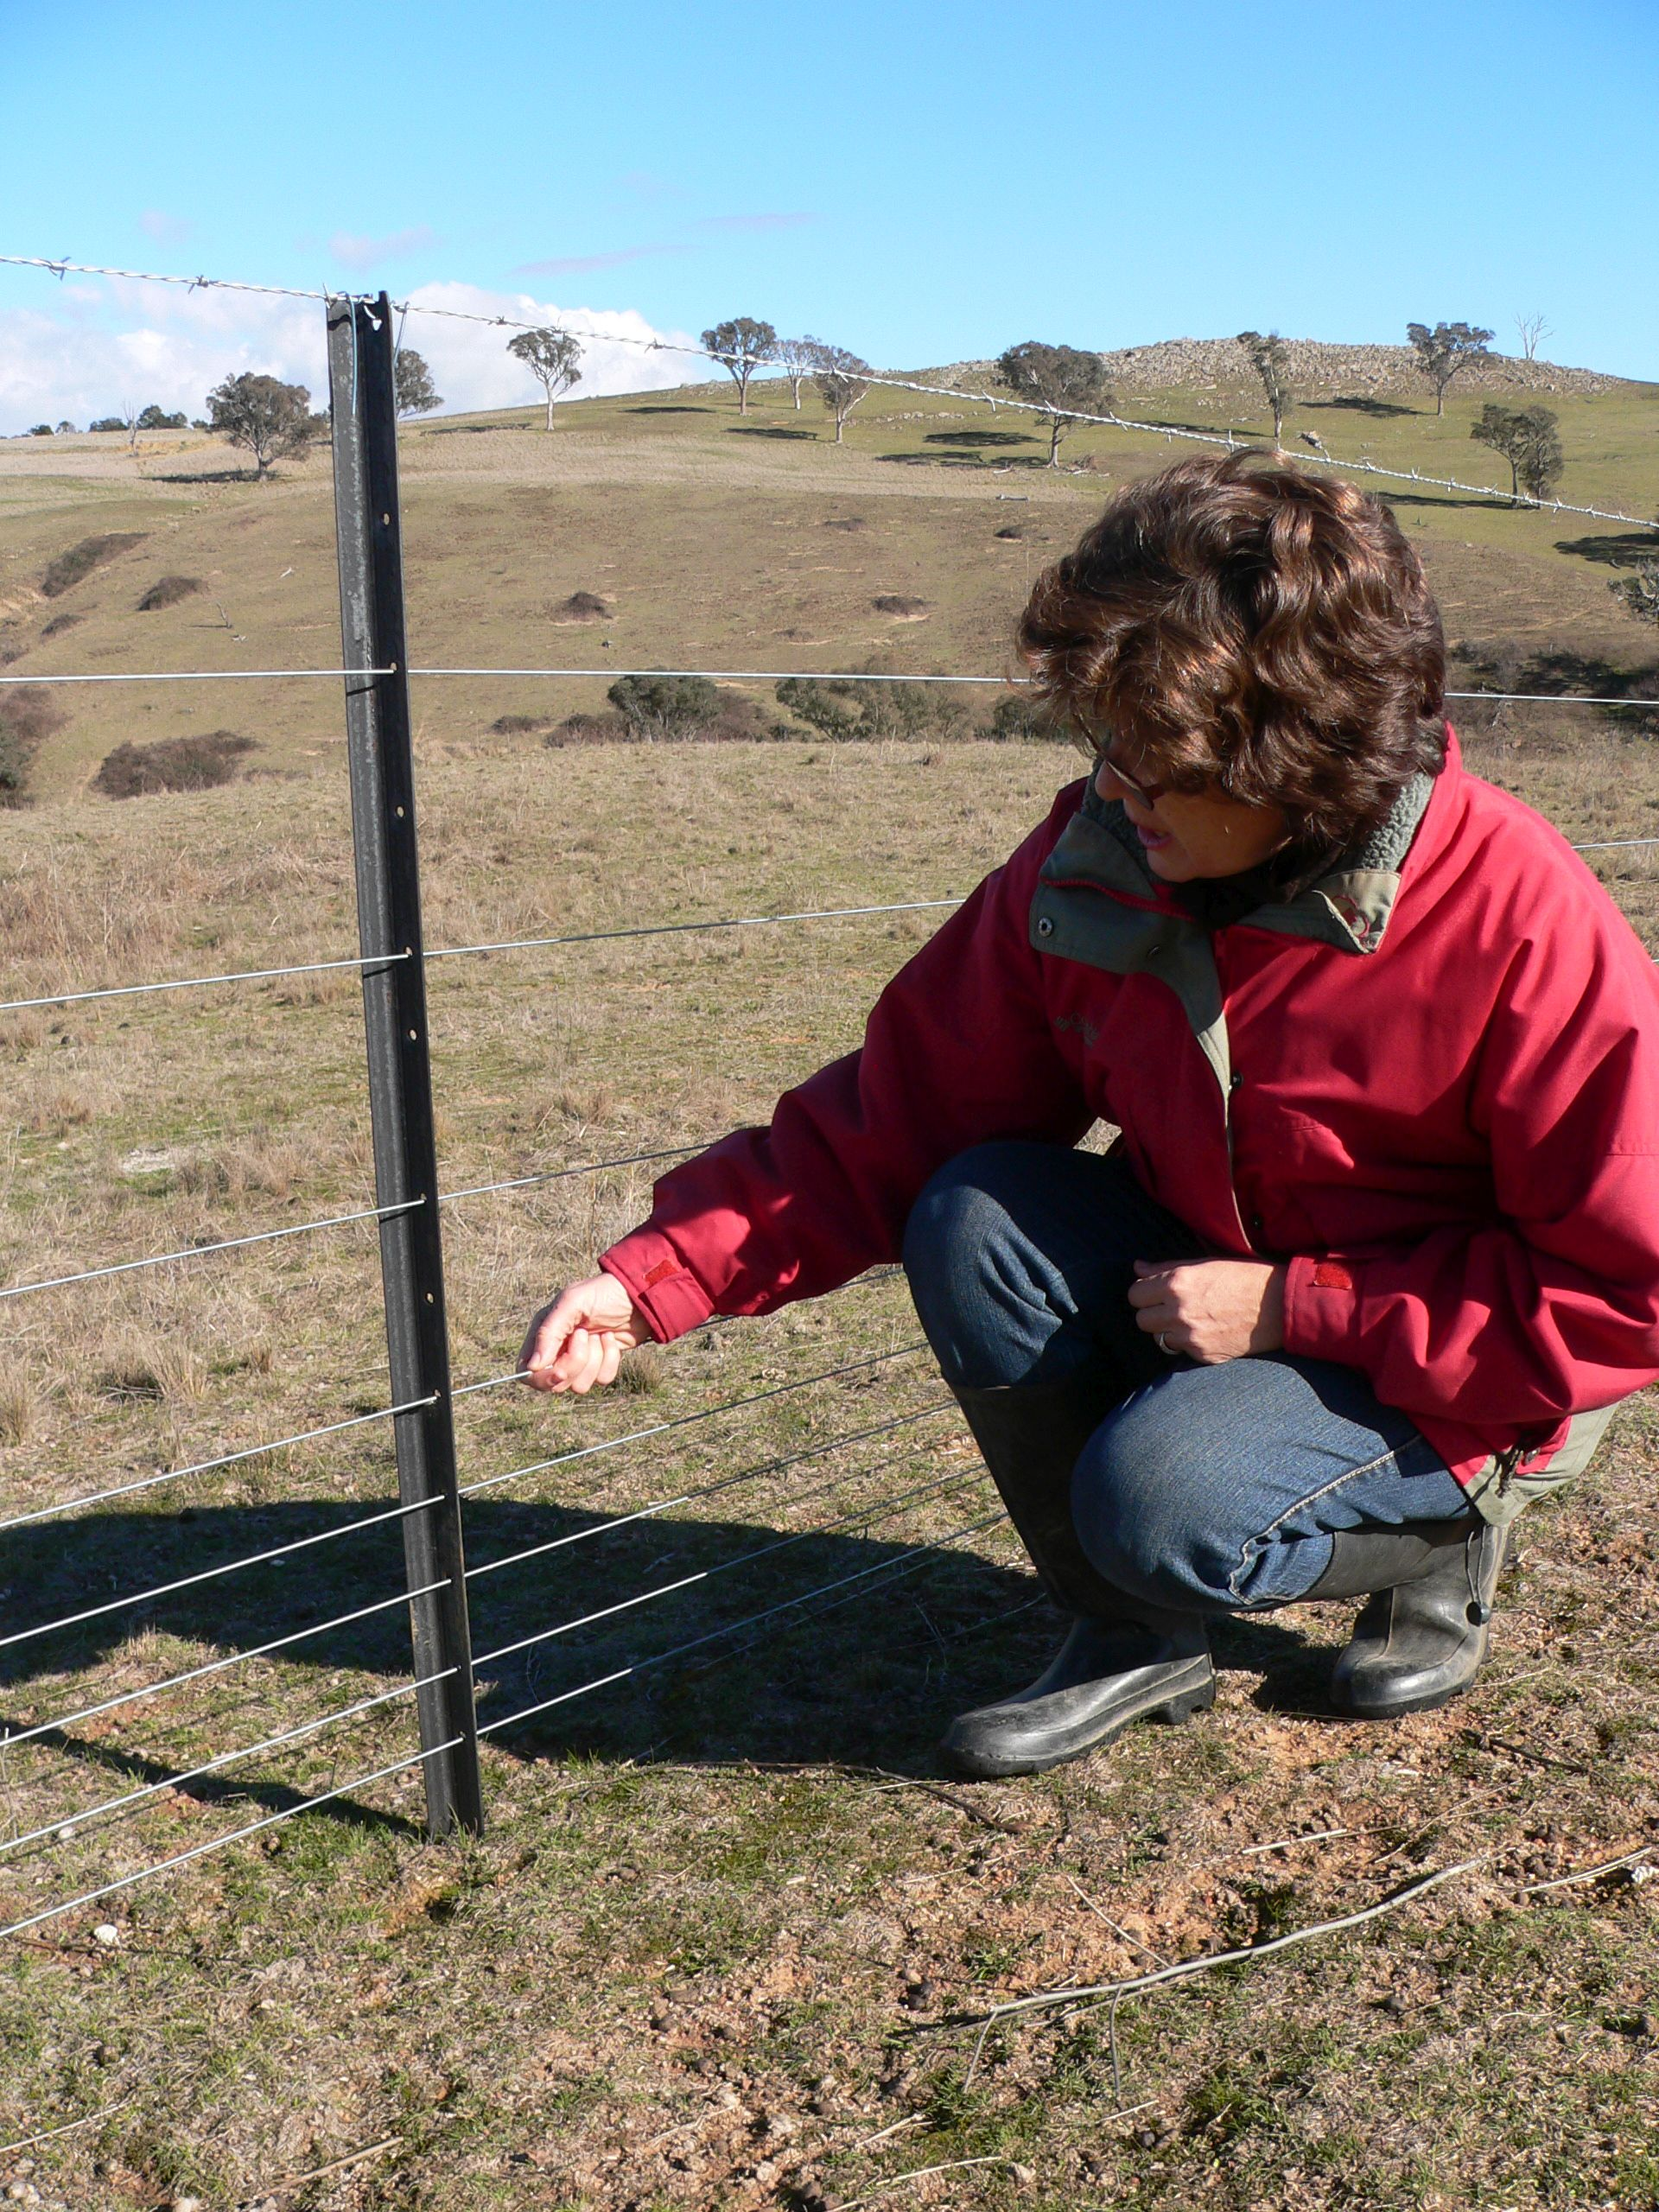 Fencing is being used to protect vulnerable areas as they rehabilitate. Photo Kylie Nicholls.